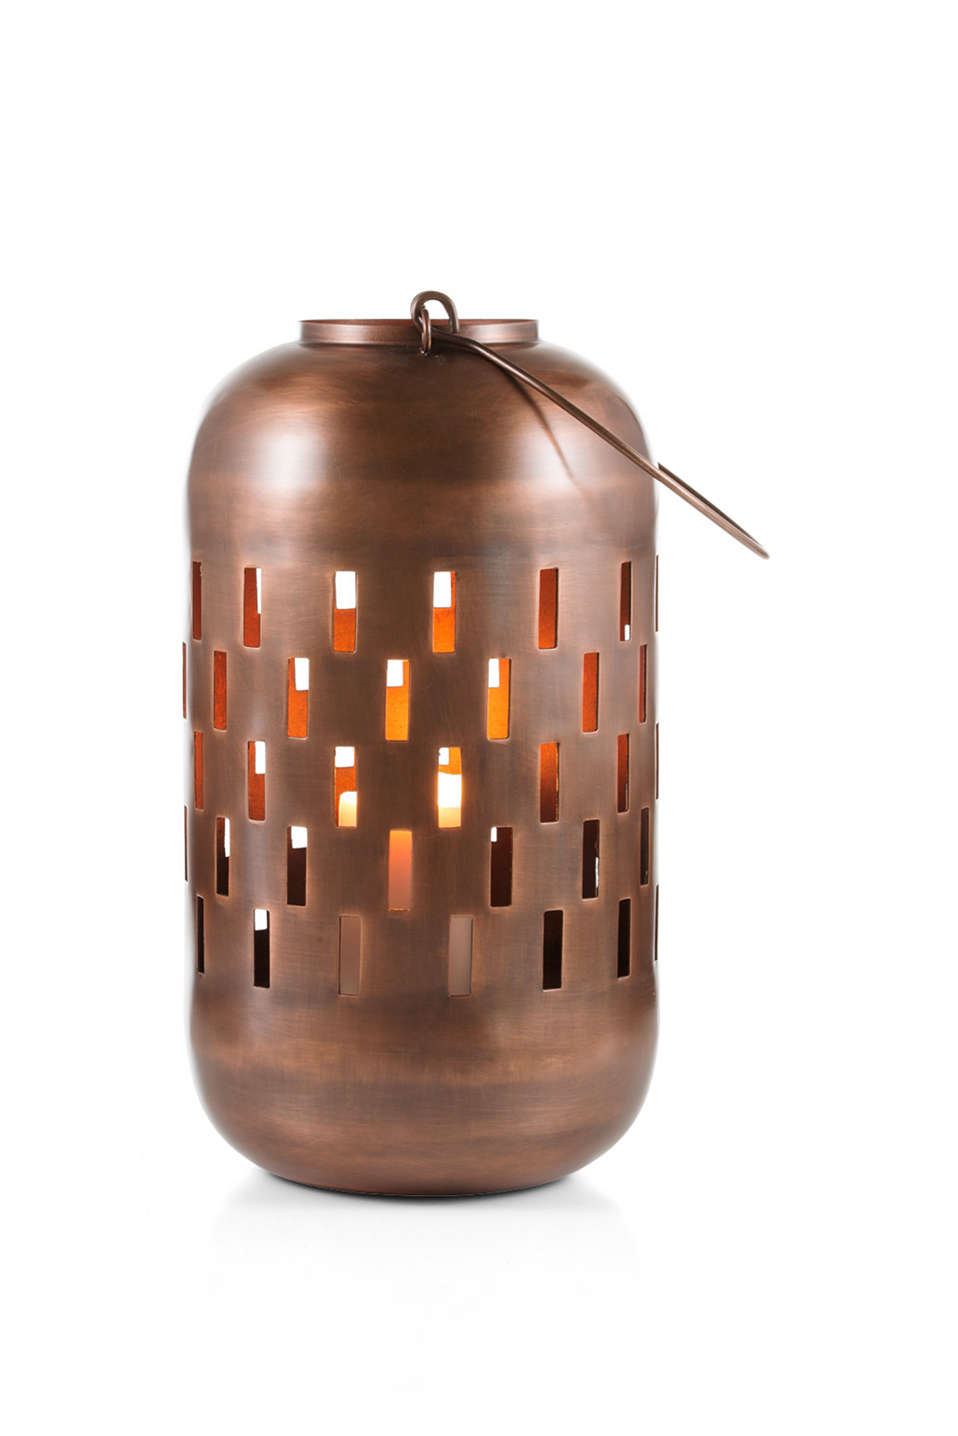 Esprit - Metal lantern + handle (approx. 28 cm high)